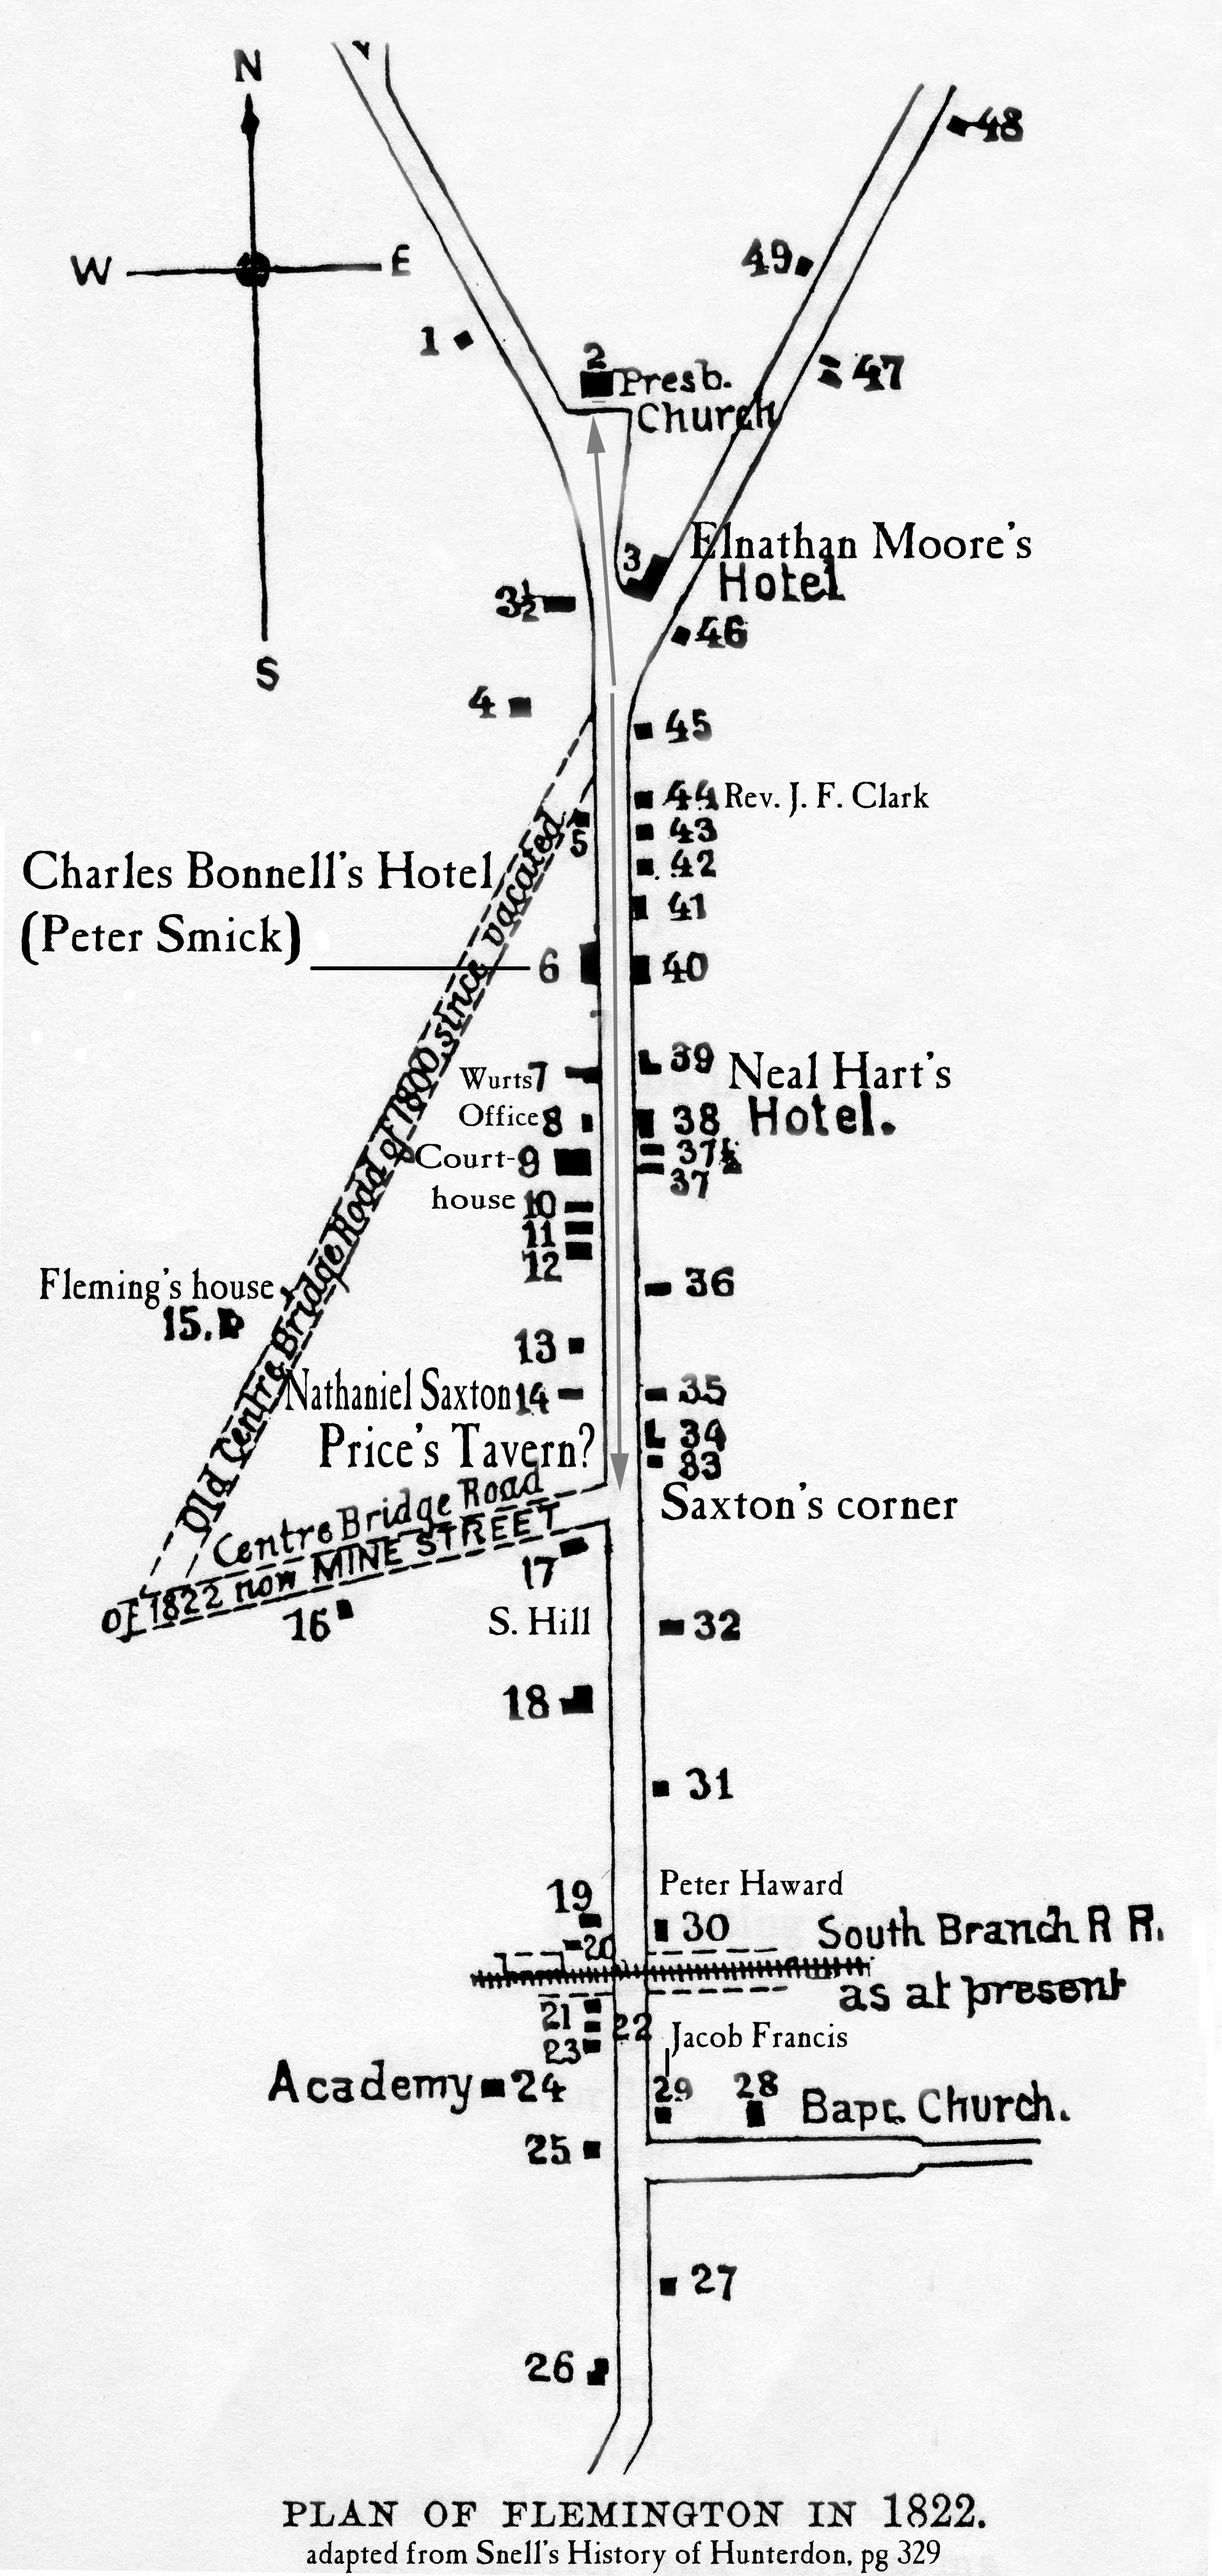 Plan of Flemington, 1822, with additions by Marfy Goodspeed